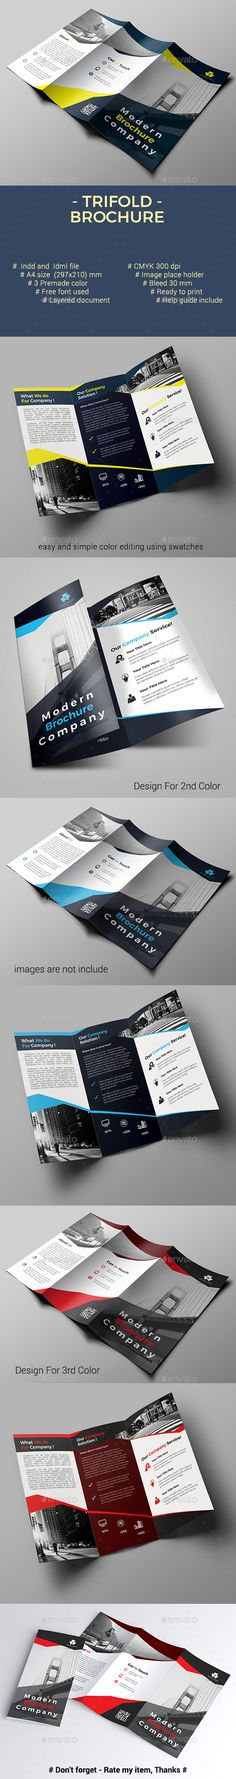 #Trifold Brochure - Corporate #Brochures Download here: https://graphicriver.net/item/trifold-brochure/20422695?ref=alena994